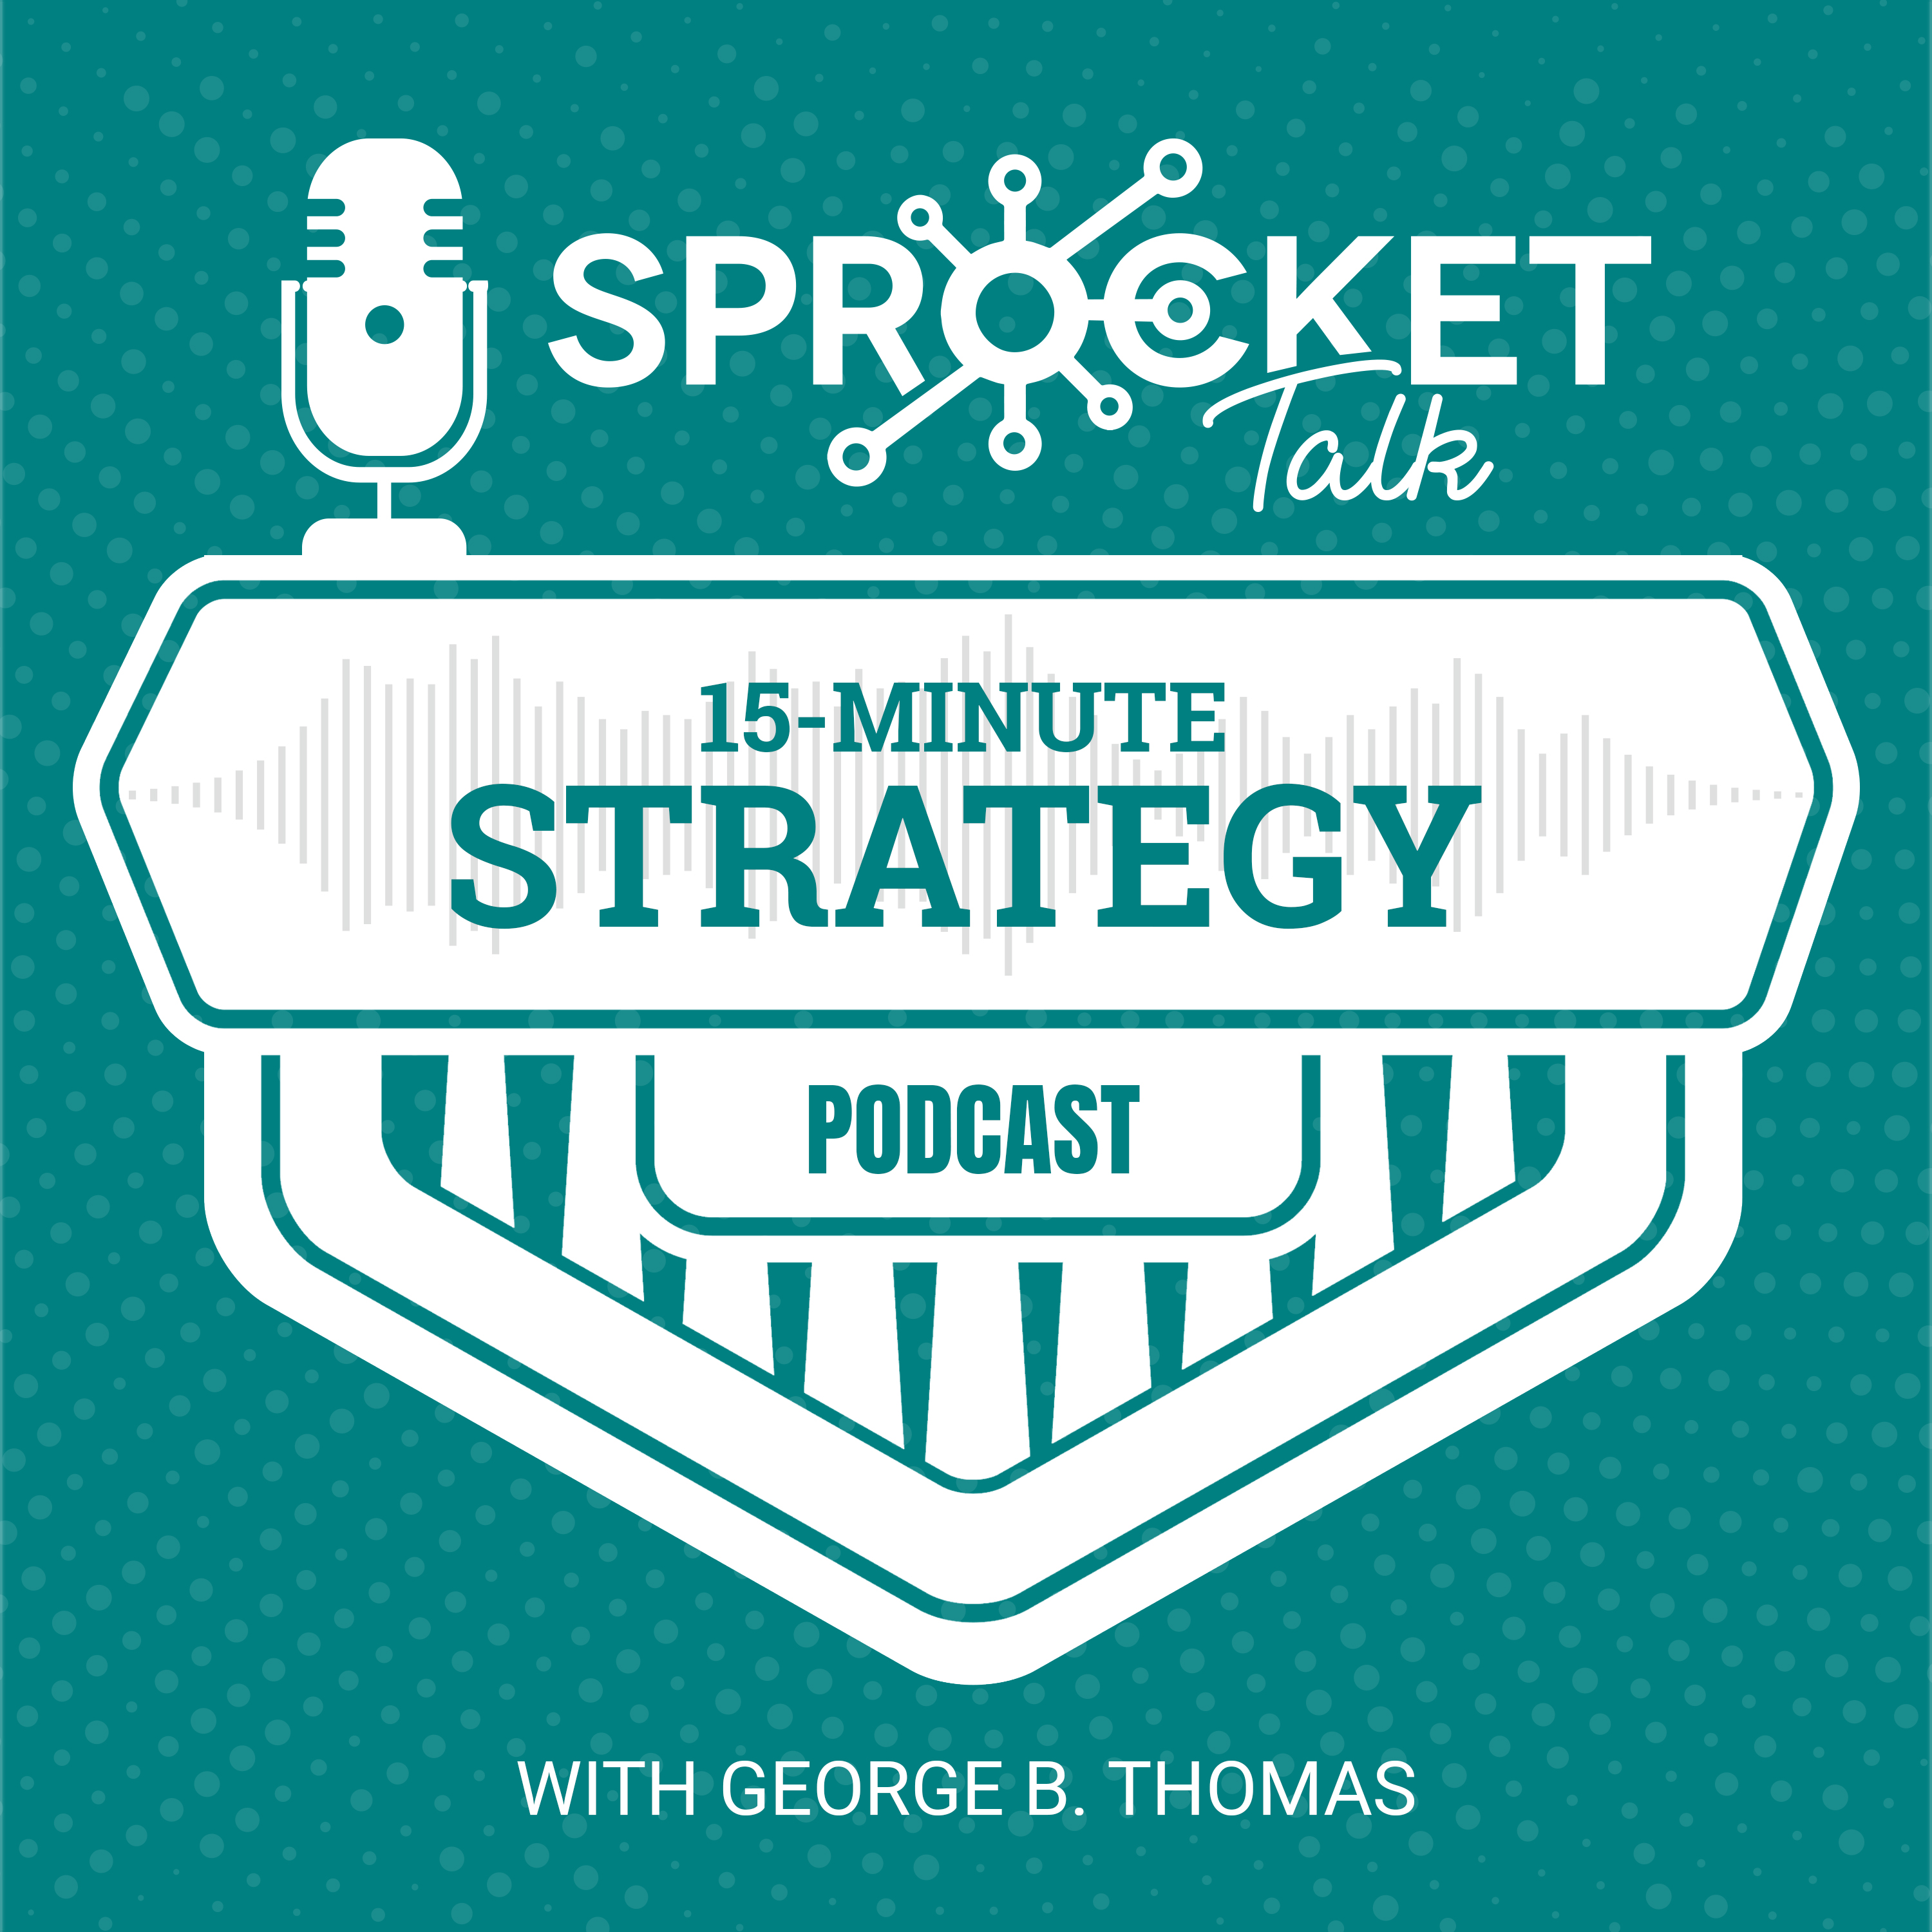 ST-Strategy-Podcast-Teal-2